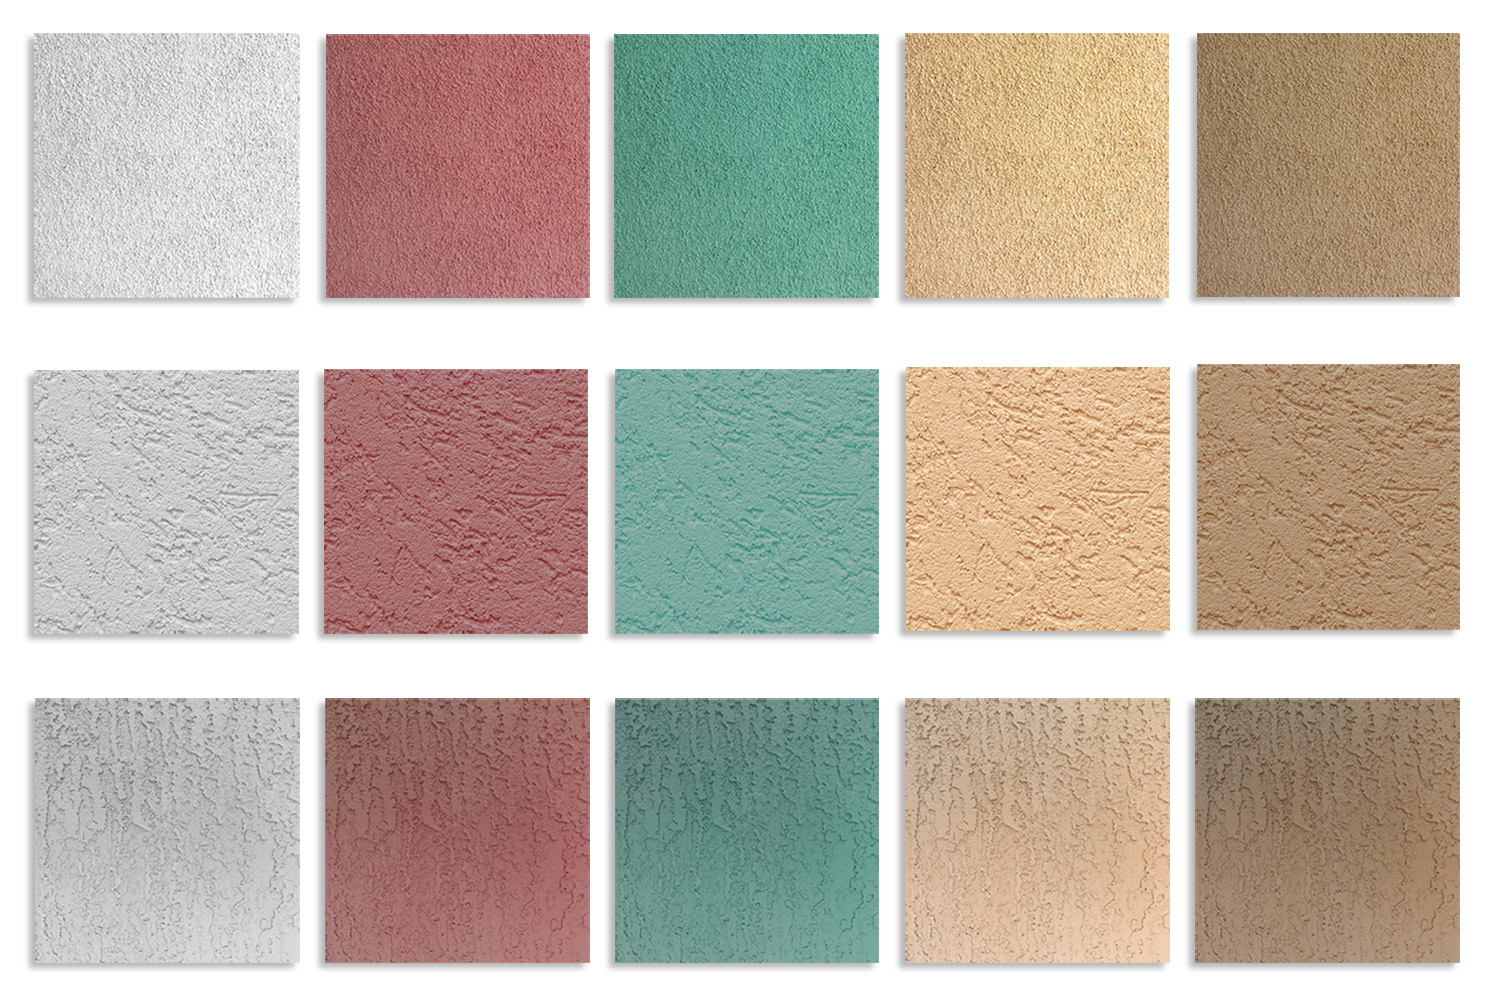 Stucco Textures - Stucco Wall Texture Background Images example image 2